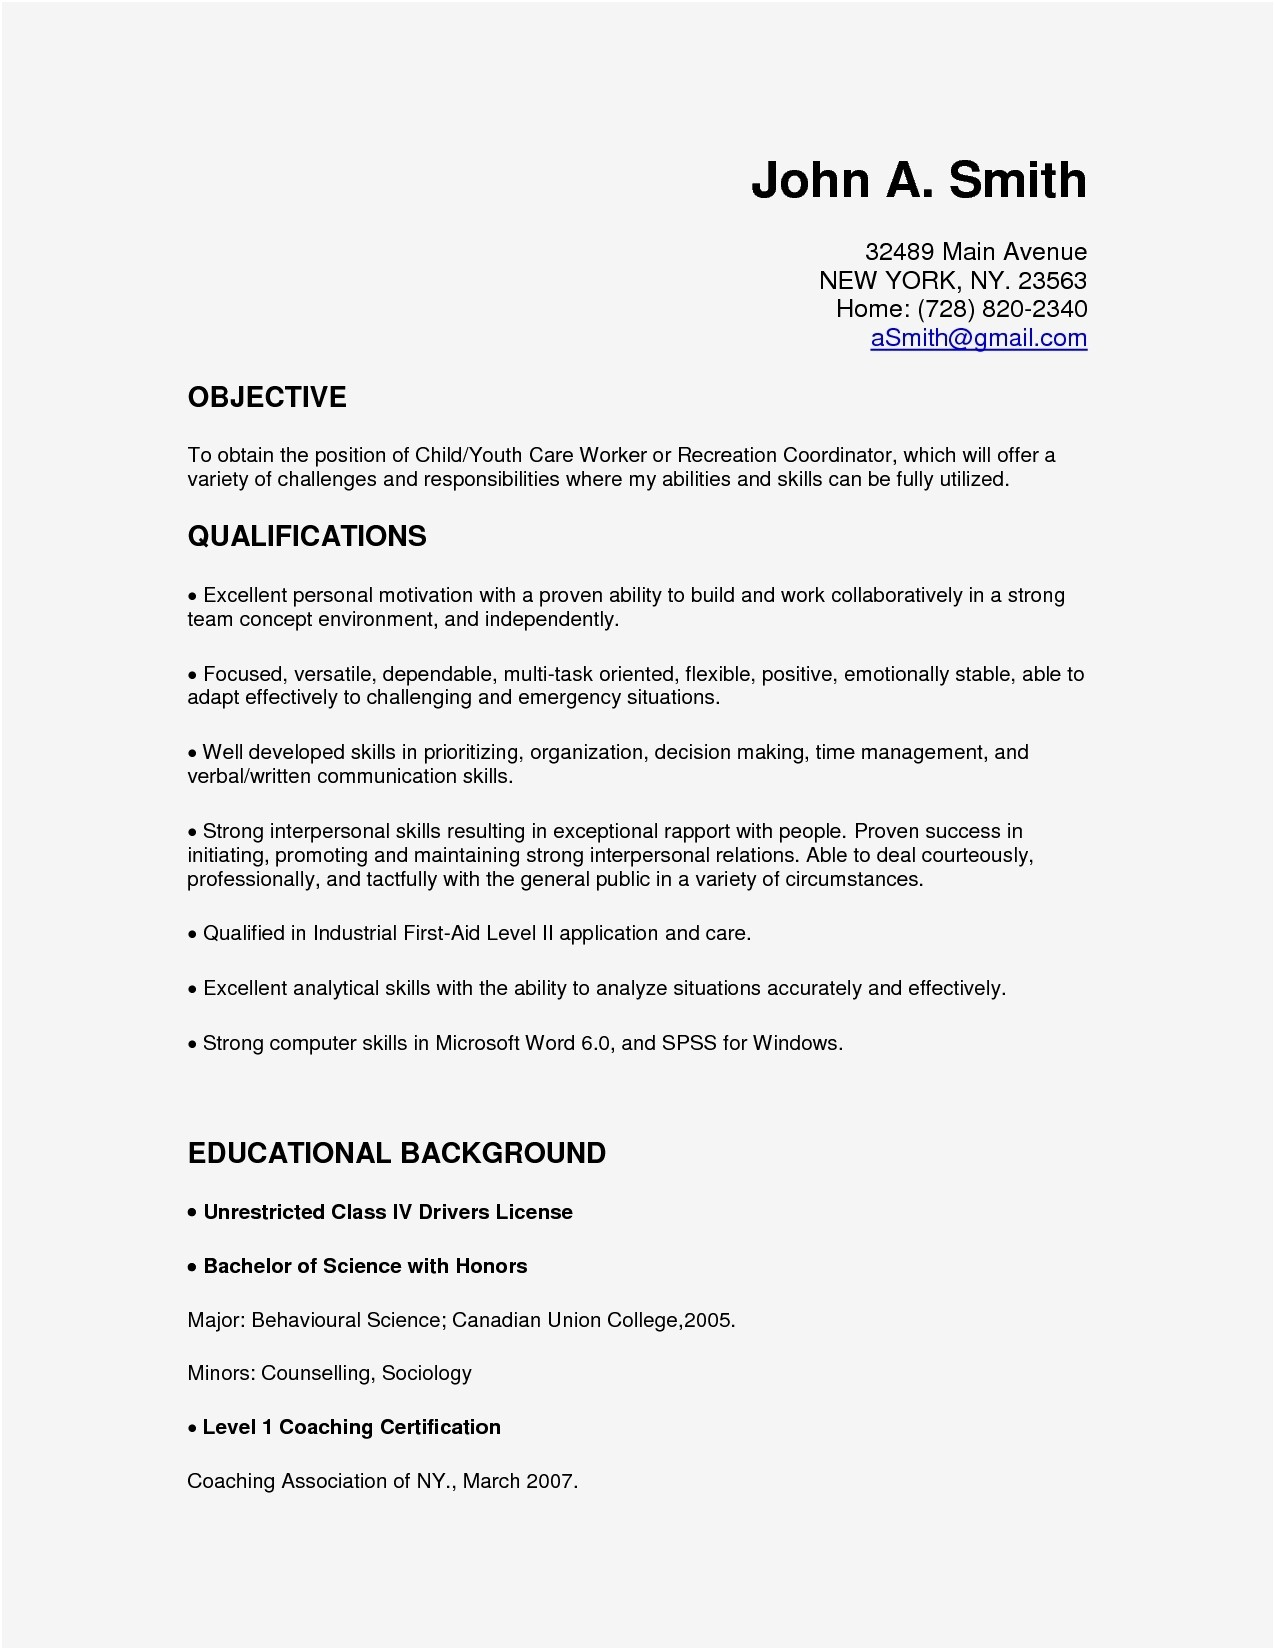 Minimalist Resume - 17 Beautiful Best Free Resume Templates